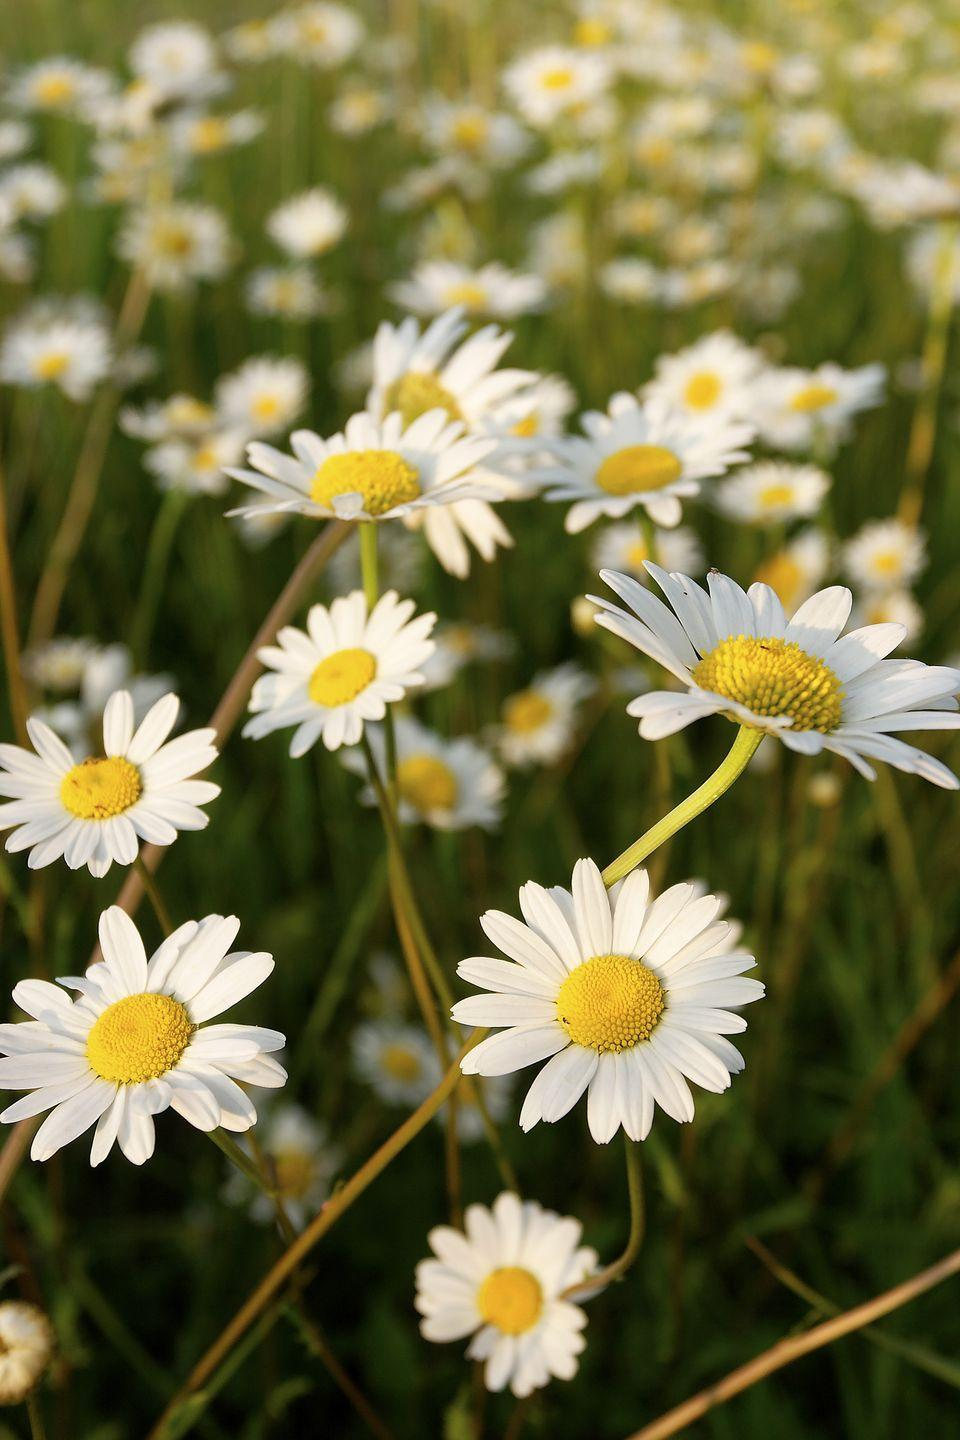 <p>Daisies are the first level of Girl Scouts so it's only fitting that they represent innocence. And with their cheery, sunny little faces, the symbolism definitely makes sense. </p>